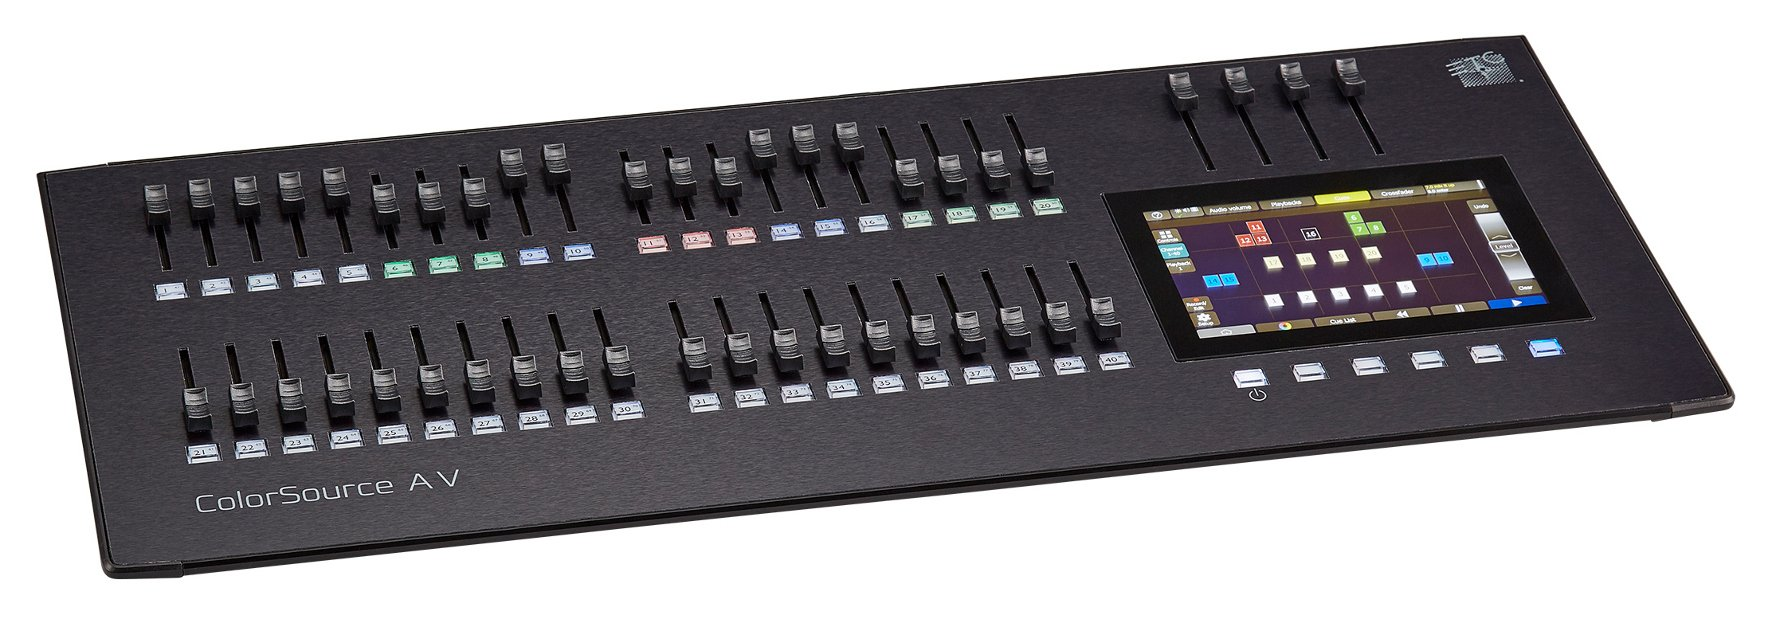 40 Fader Lighting Console with HDMI, Network, and Audio